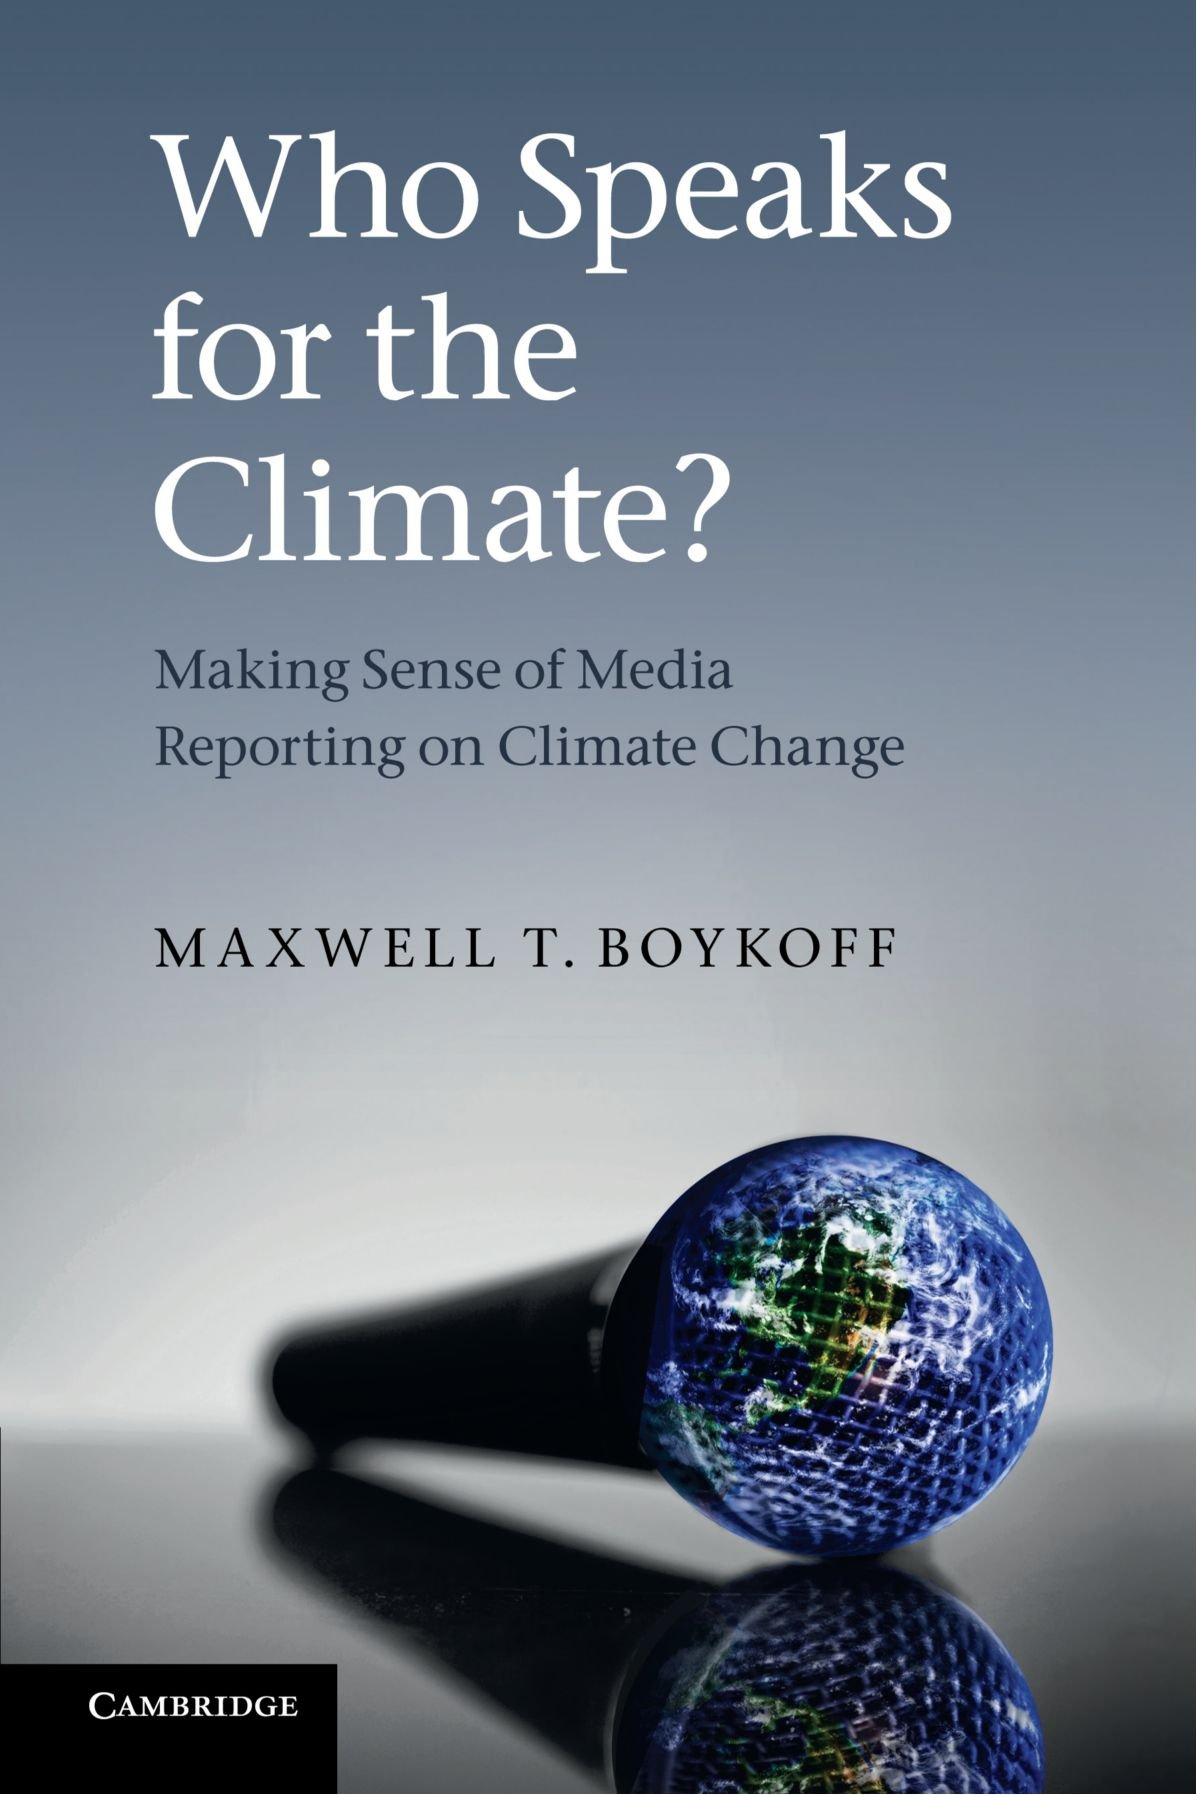 Who speaks for the climate making sense of media reporting on who speaks for the climate making sense of media reporting on climate change maxwell t boykoff 9780521133050 amazon books fandeluxe Gallery